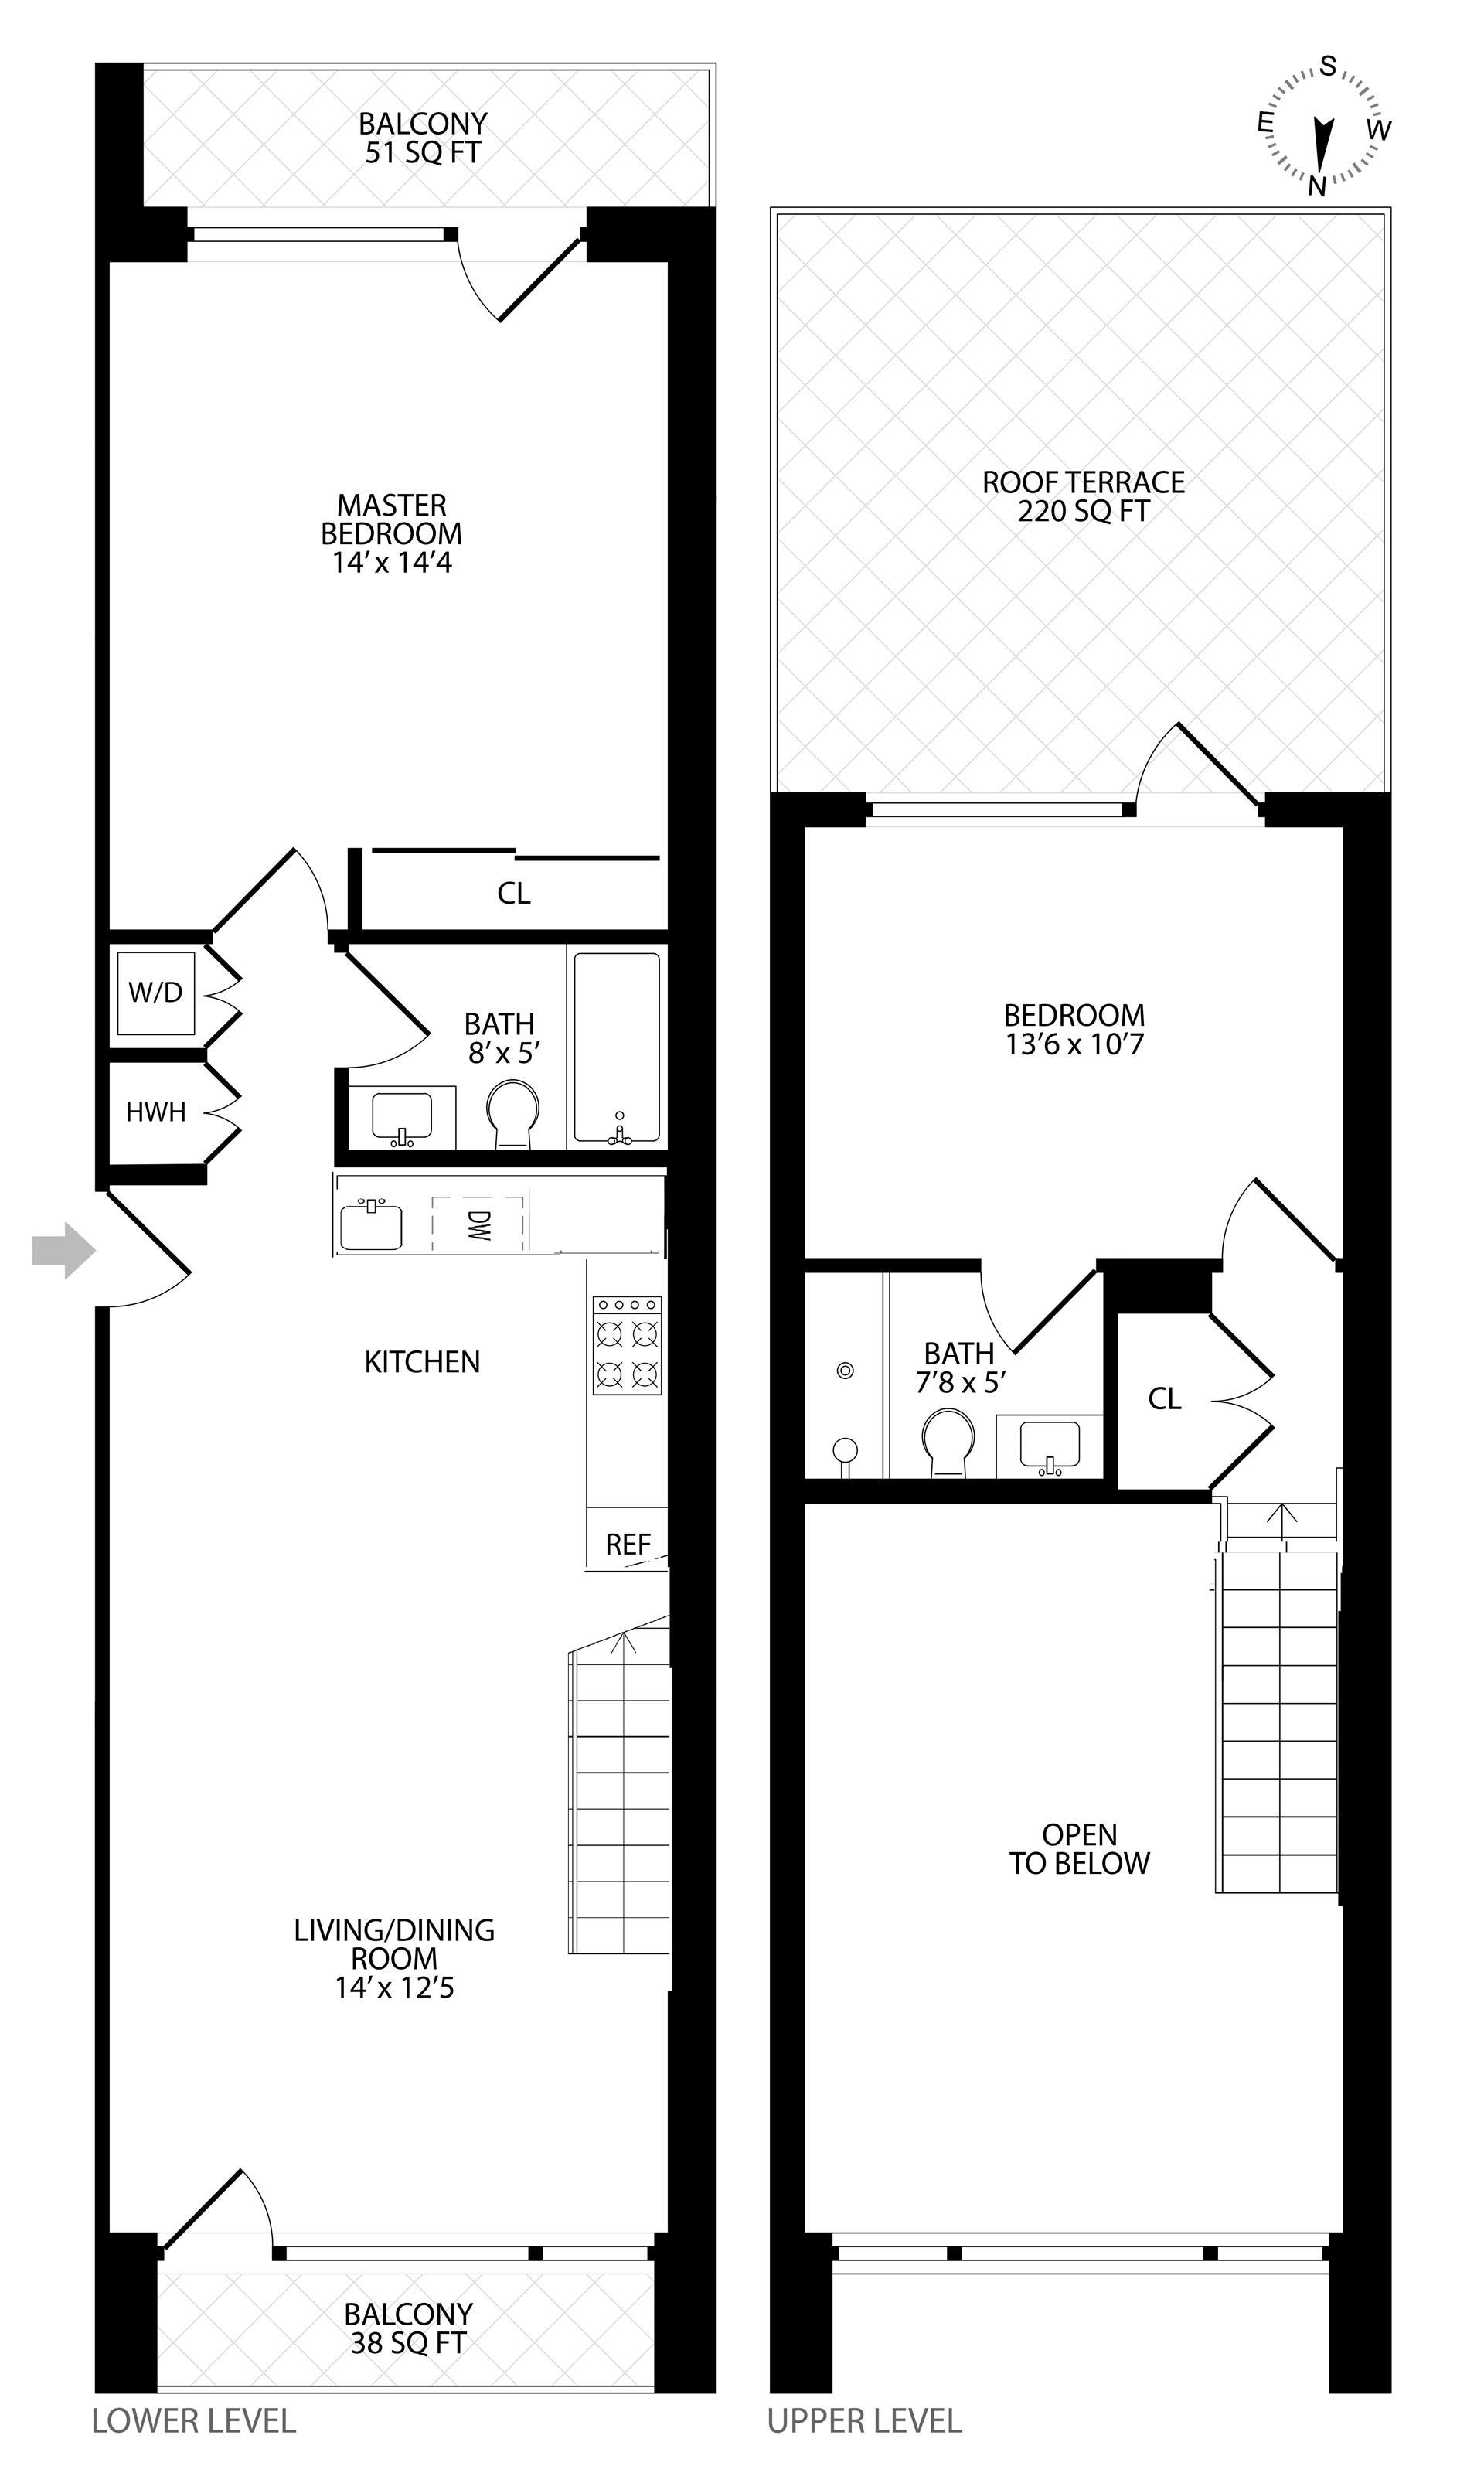 Floor plan of 204 Monroe St, 4C - Bedford - Stuyvesant, New York